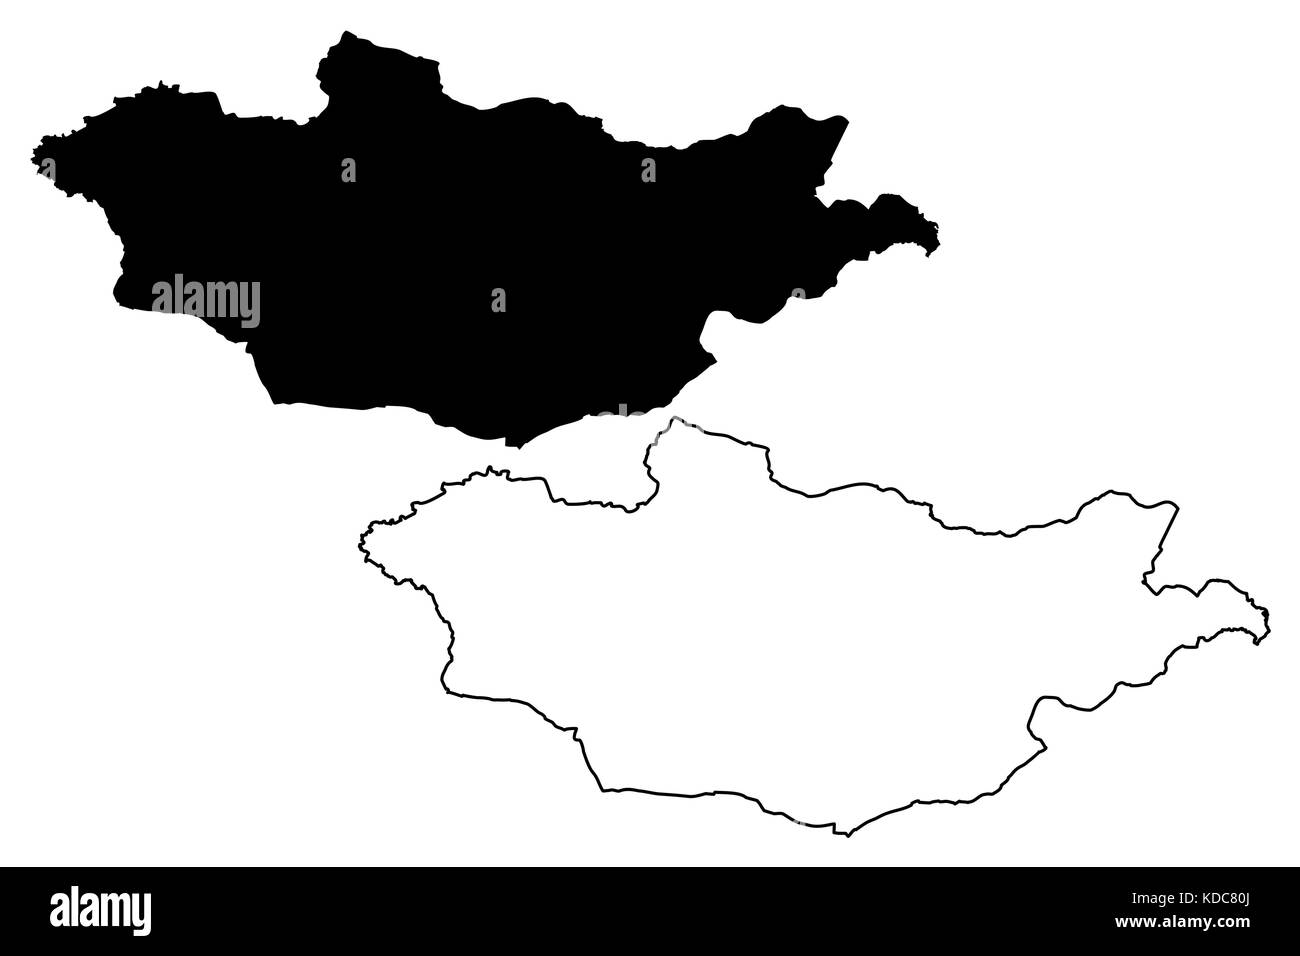 Mongolia map vector illustration, scribble sketch Mongolia - Stock Vector